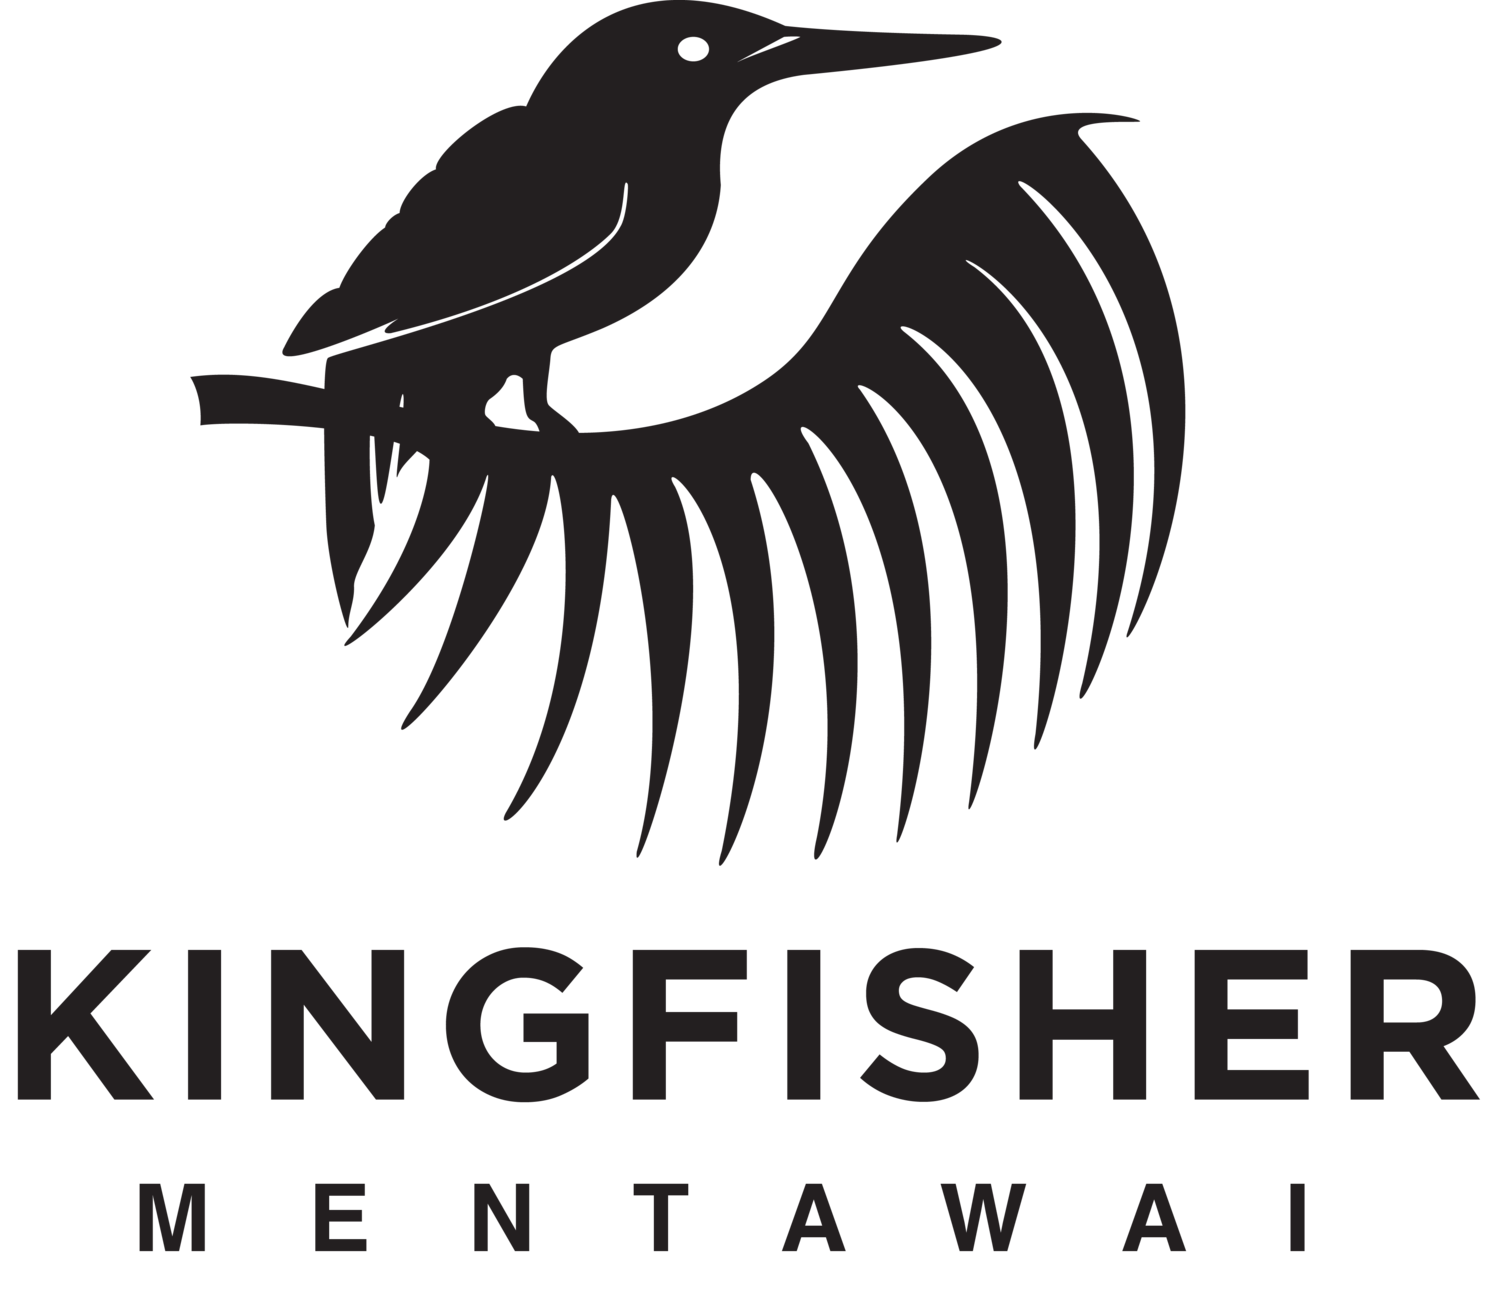 Kingfisher | Surf Resort | Mentawai, Indonesia